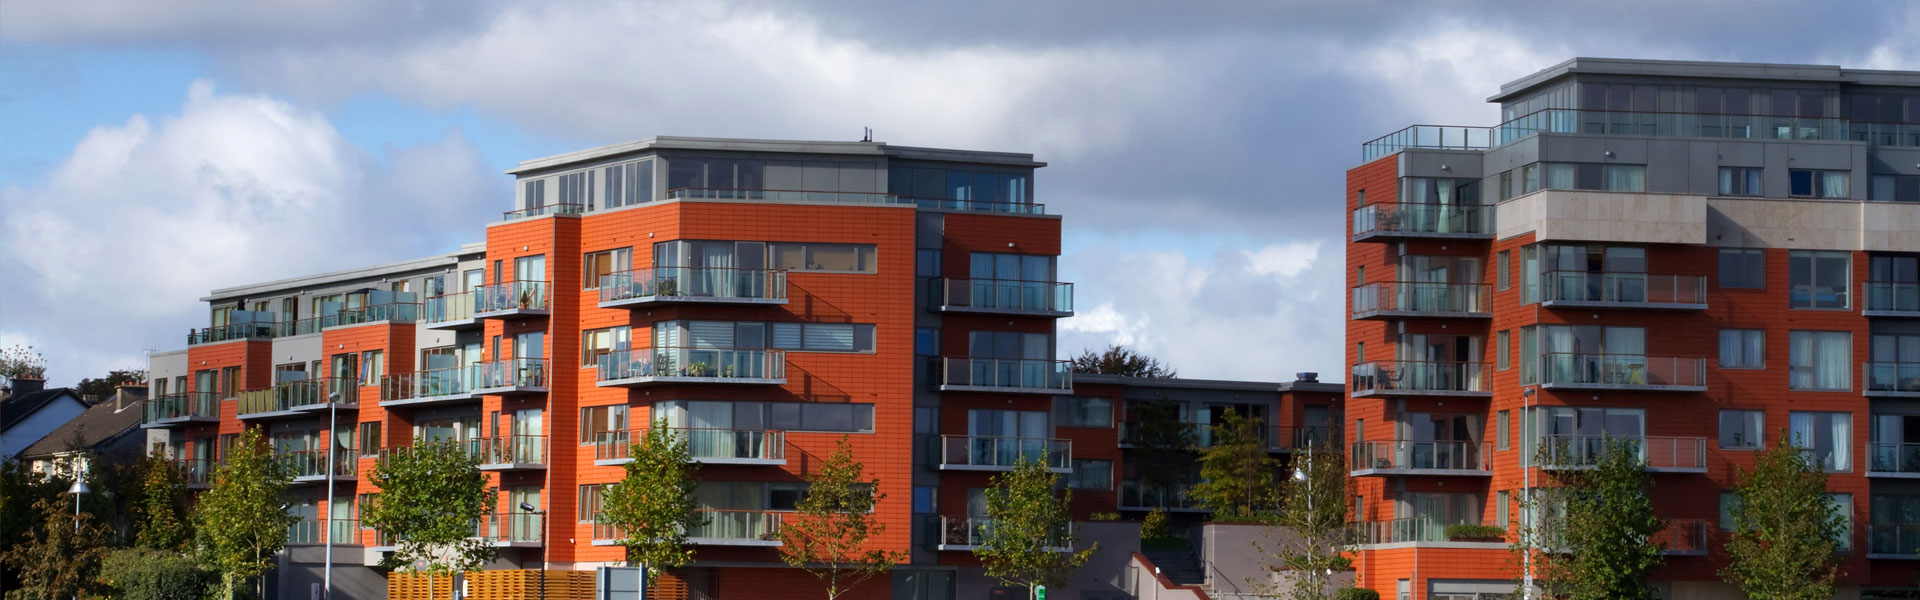 professional Commercial property management in Kilmessan